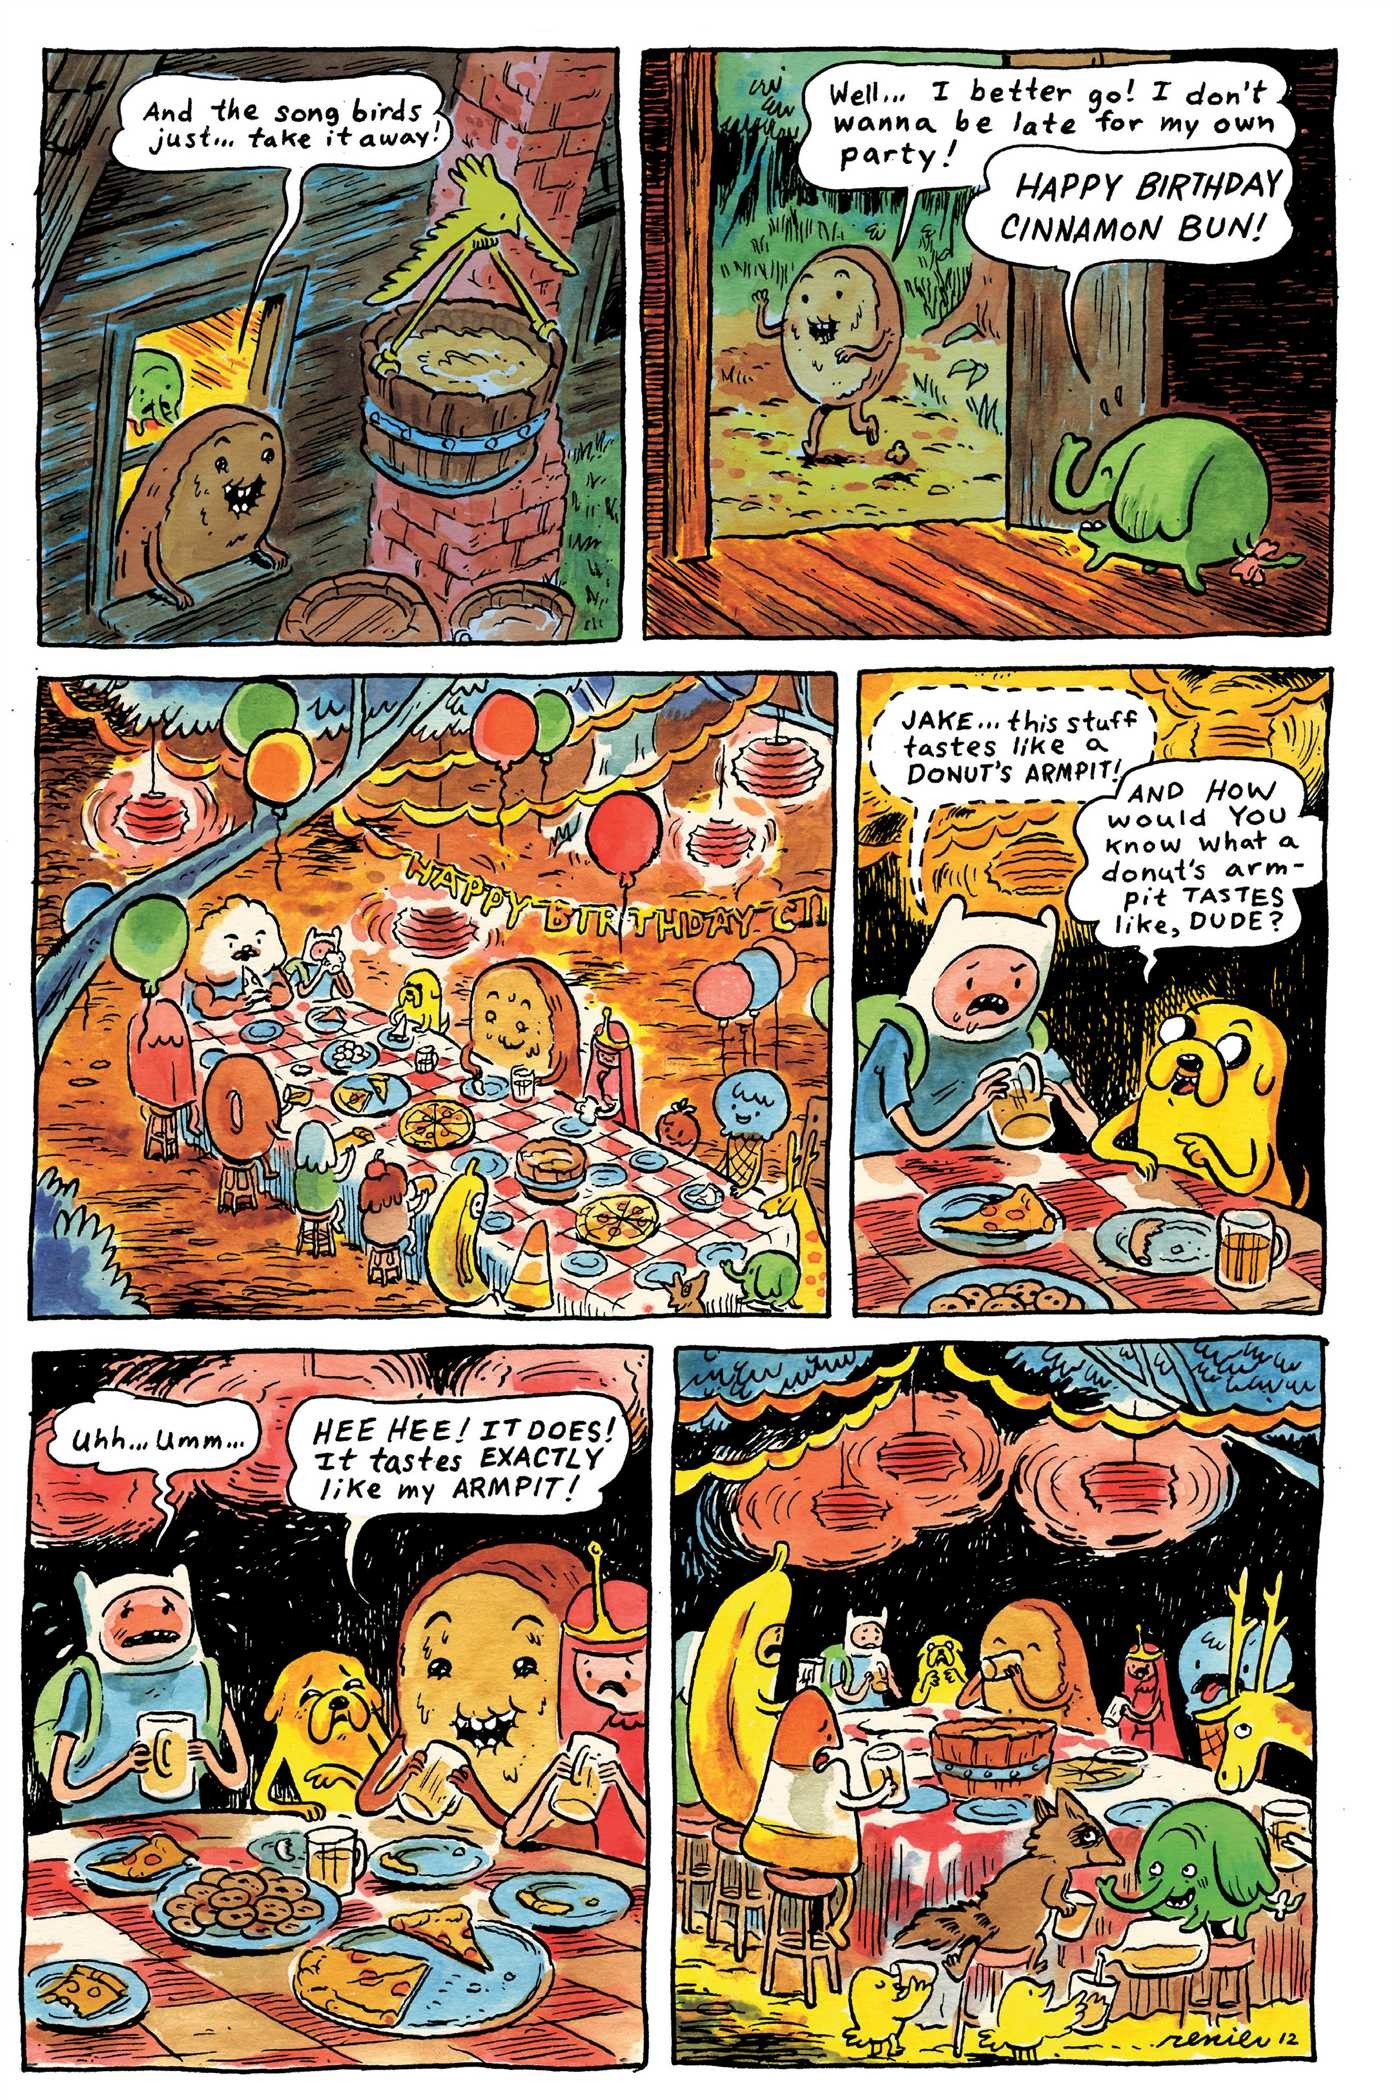 Adventure-time-sugary-shorts-vol-1-9781608863617.in09